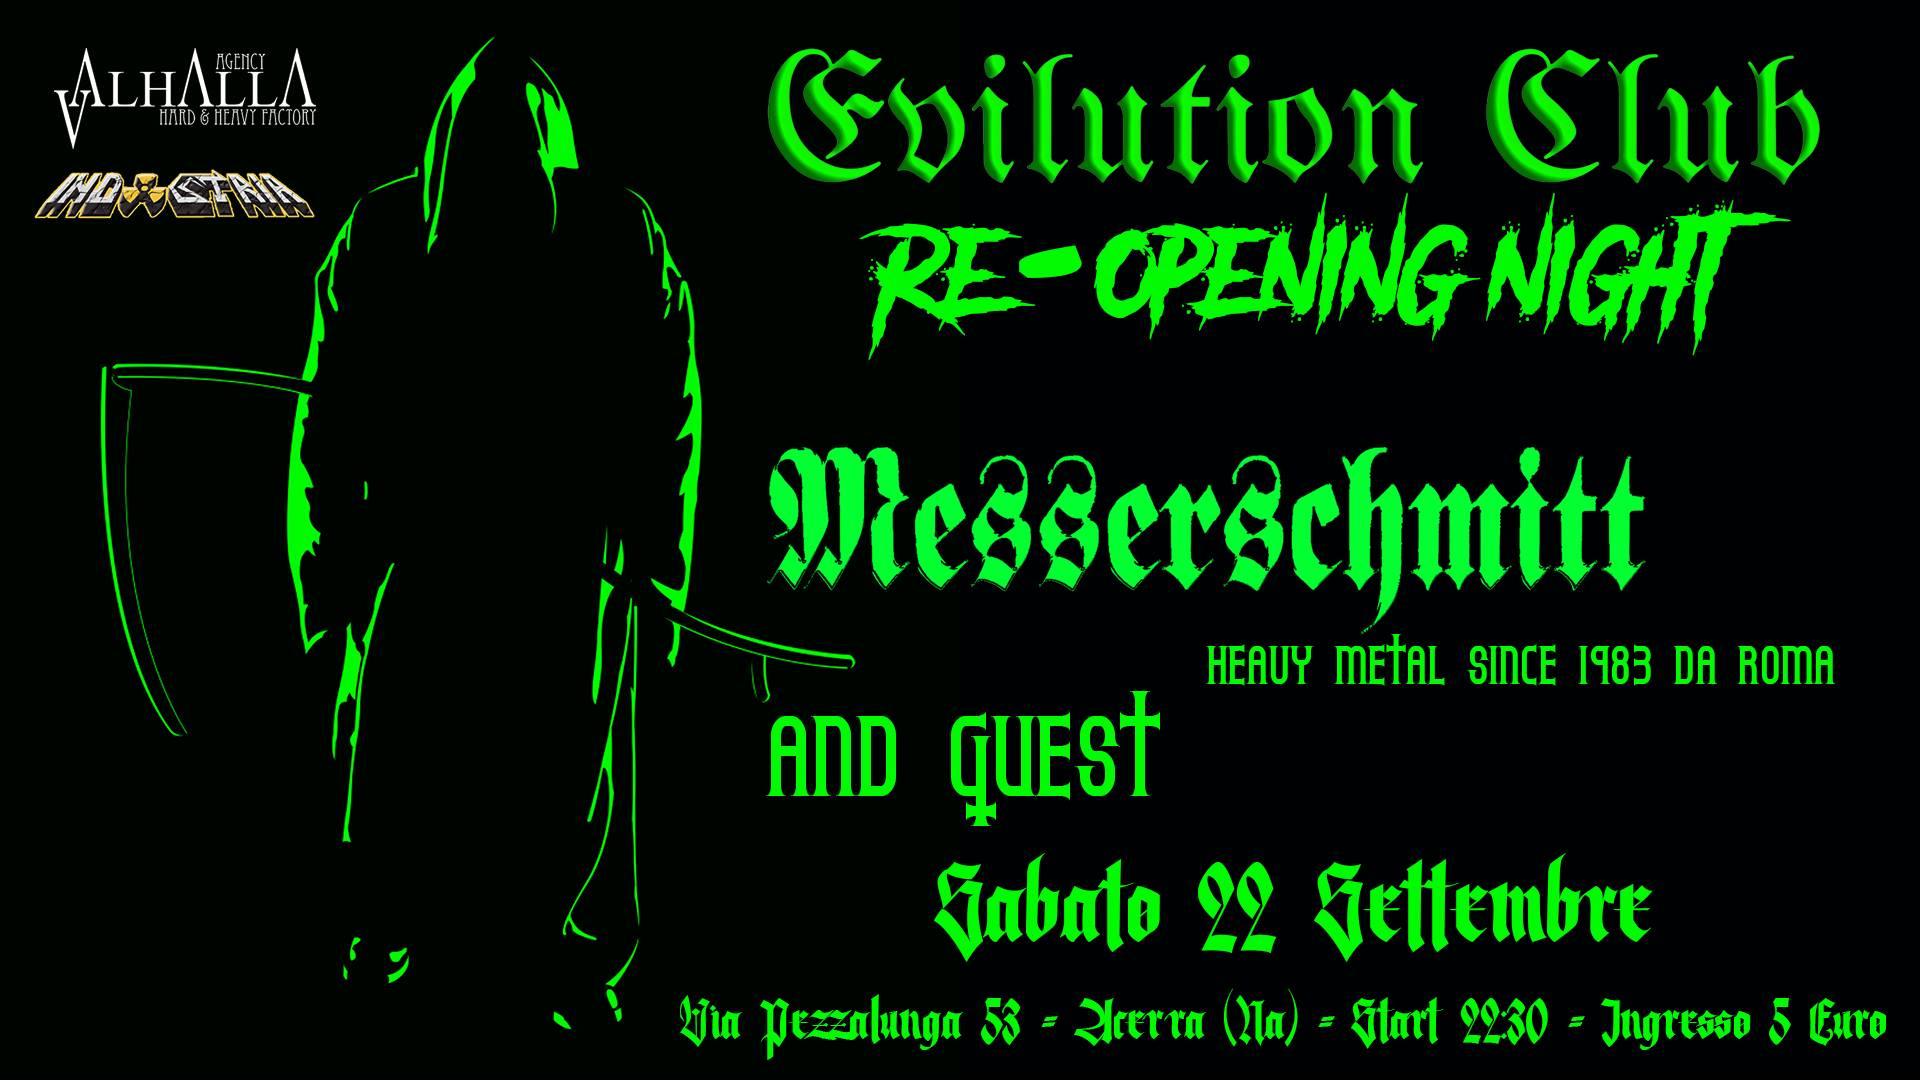 Sabato 22 settembre – Evilution Club Re-Opening Night